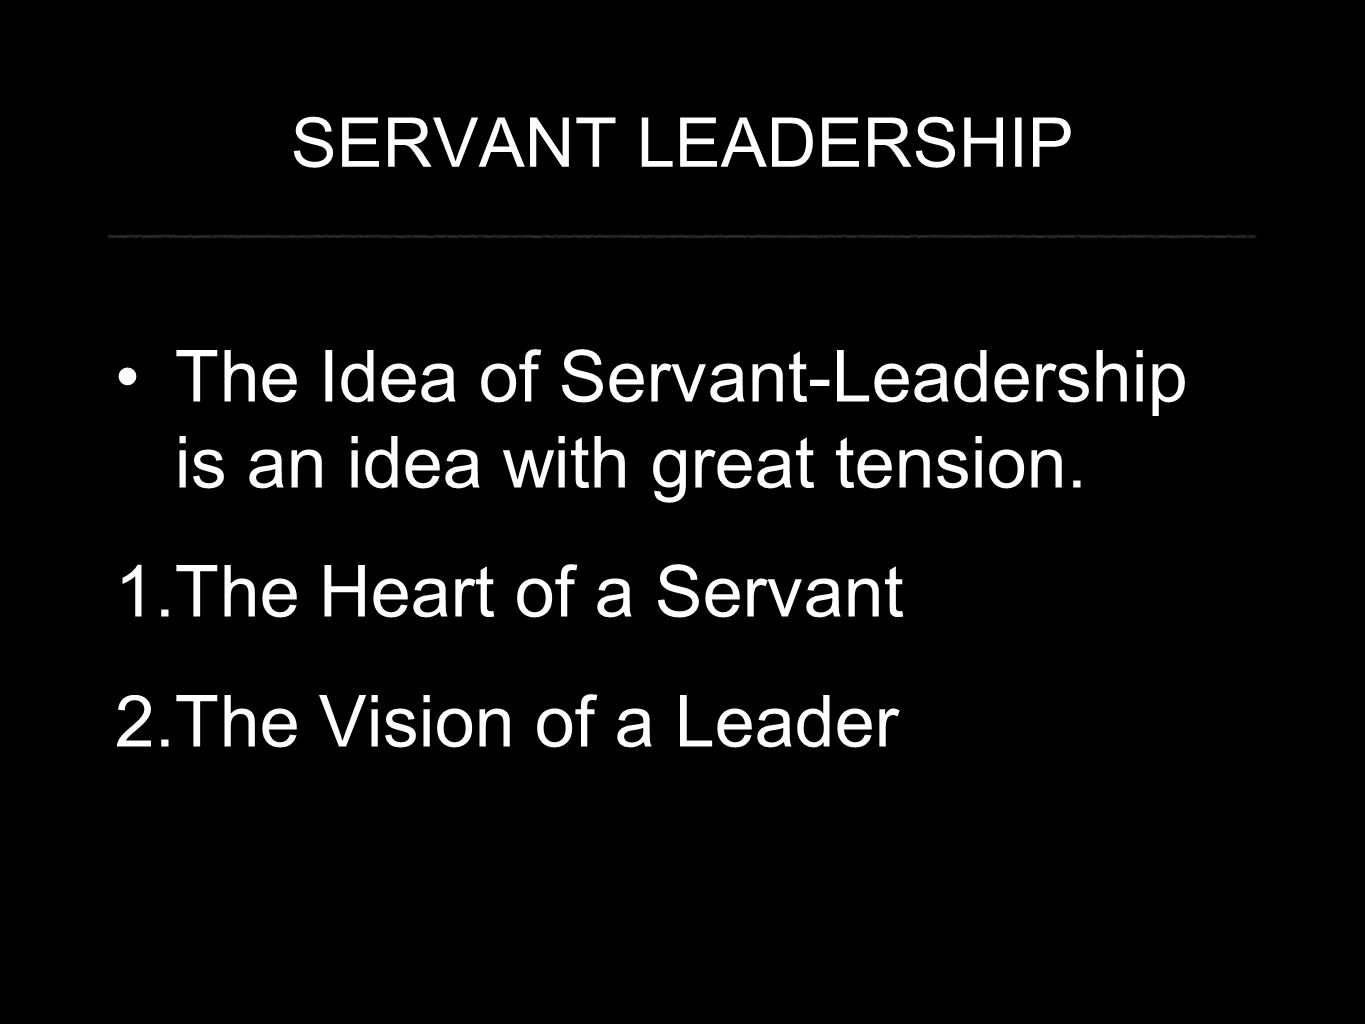 SERVANT LEADERSHIP The Idea of Servant-Leadership is an idea with great tension. 1.The Heart of a Servant 2.The Vision of a Leader